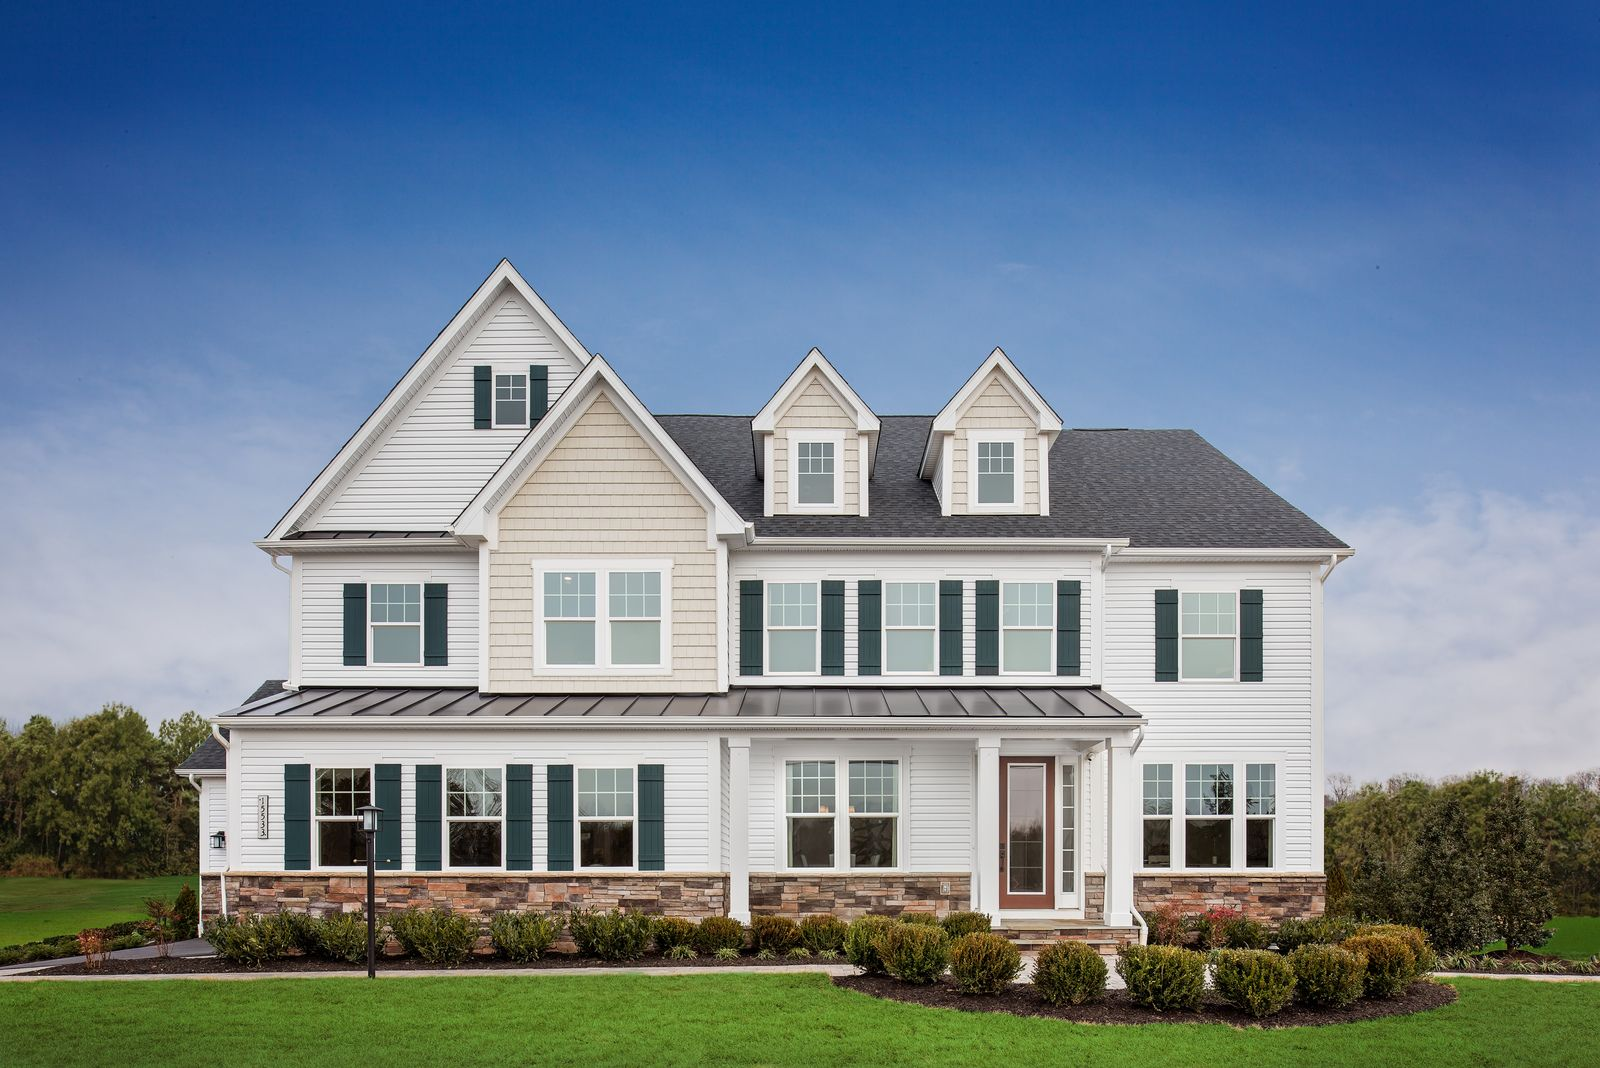 Estate Living Near Gainesville:Our luxury single family homes are now selling -schedule a visit today!